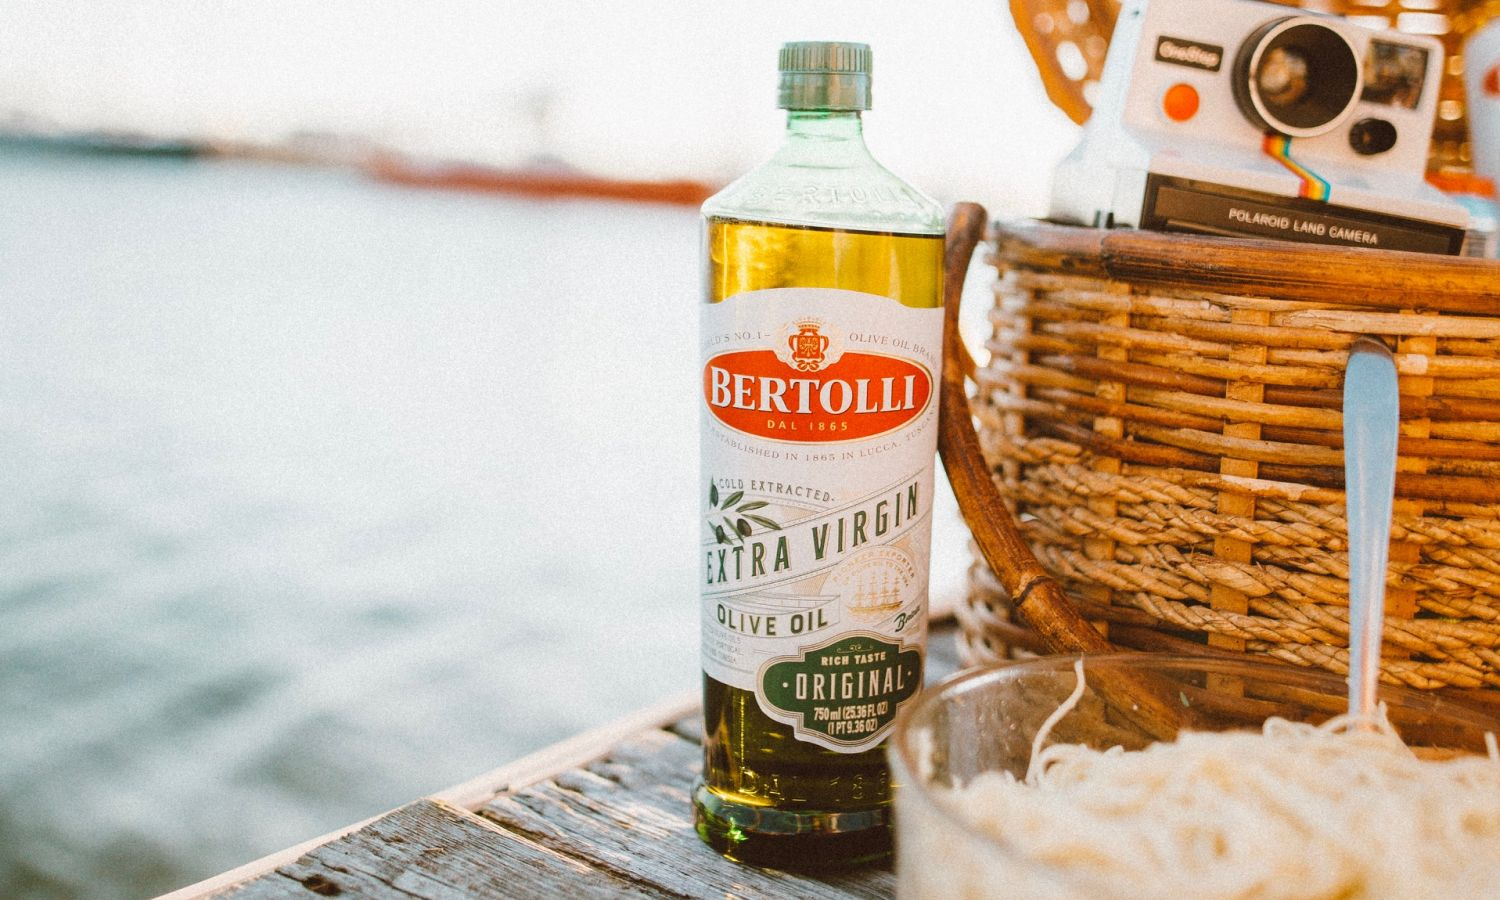 A glass bottle with Bertolli Olive Oil with Italian pasta represent Italian food recipies and cooking with Bertolli extra virgin olive oil.